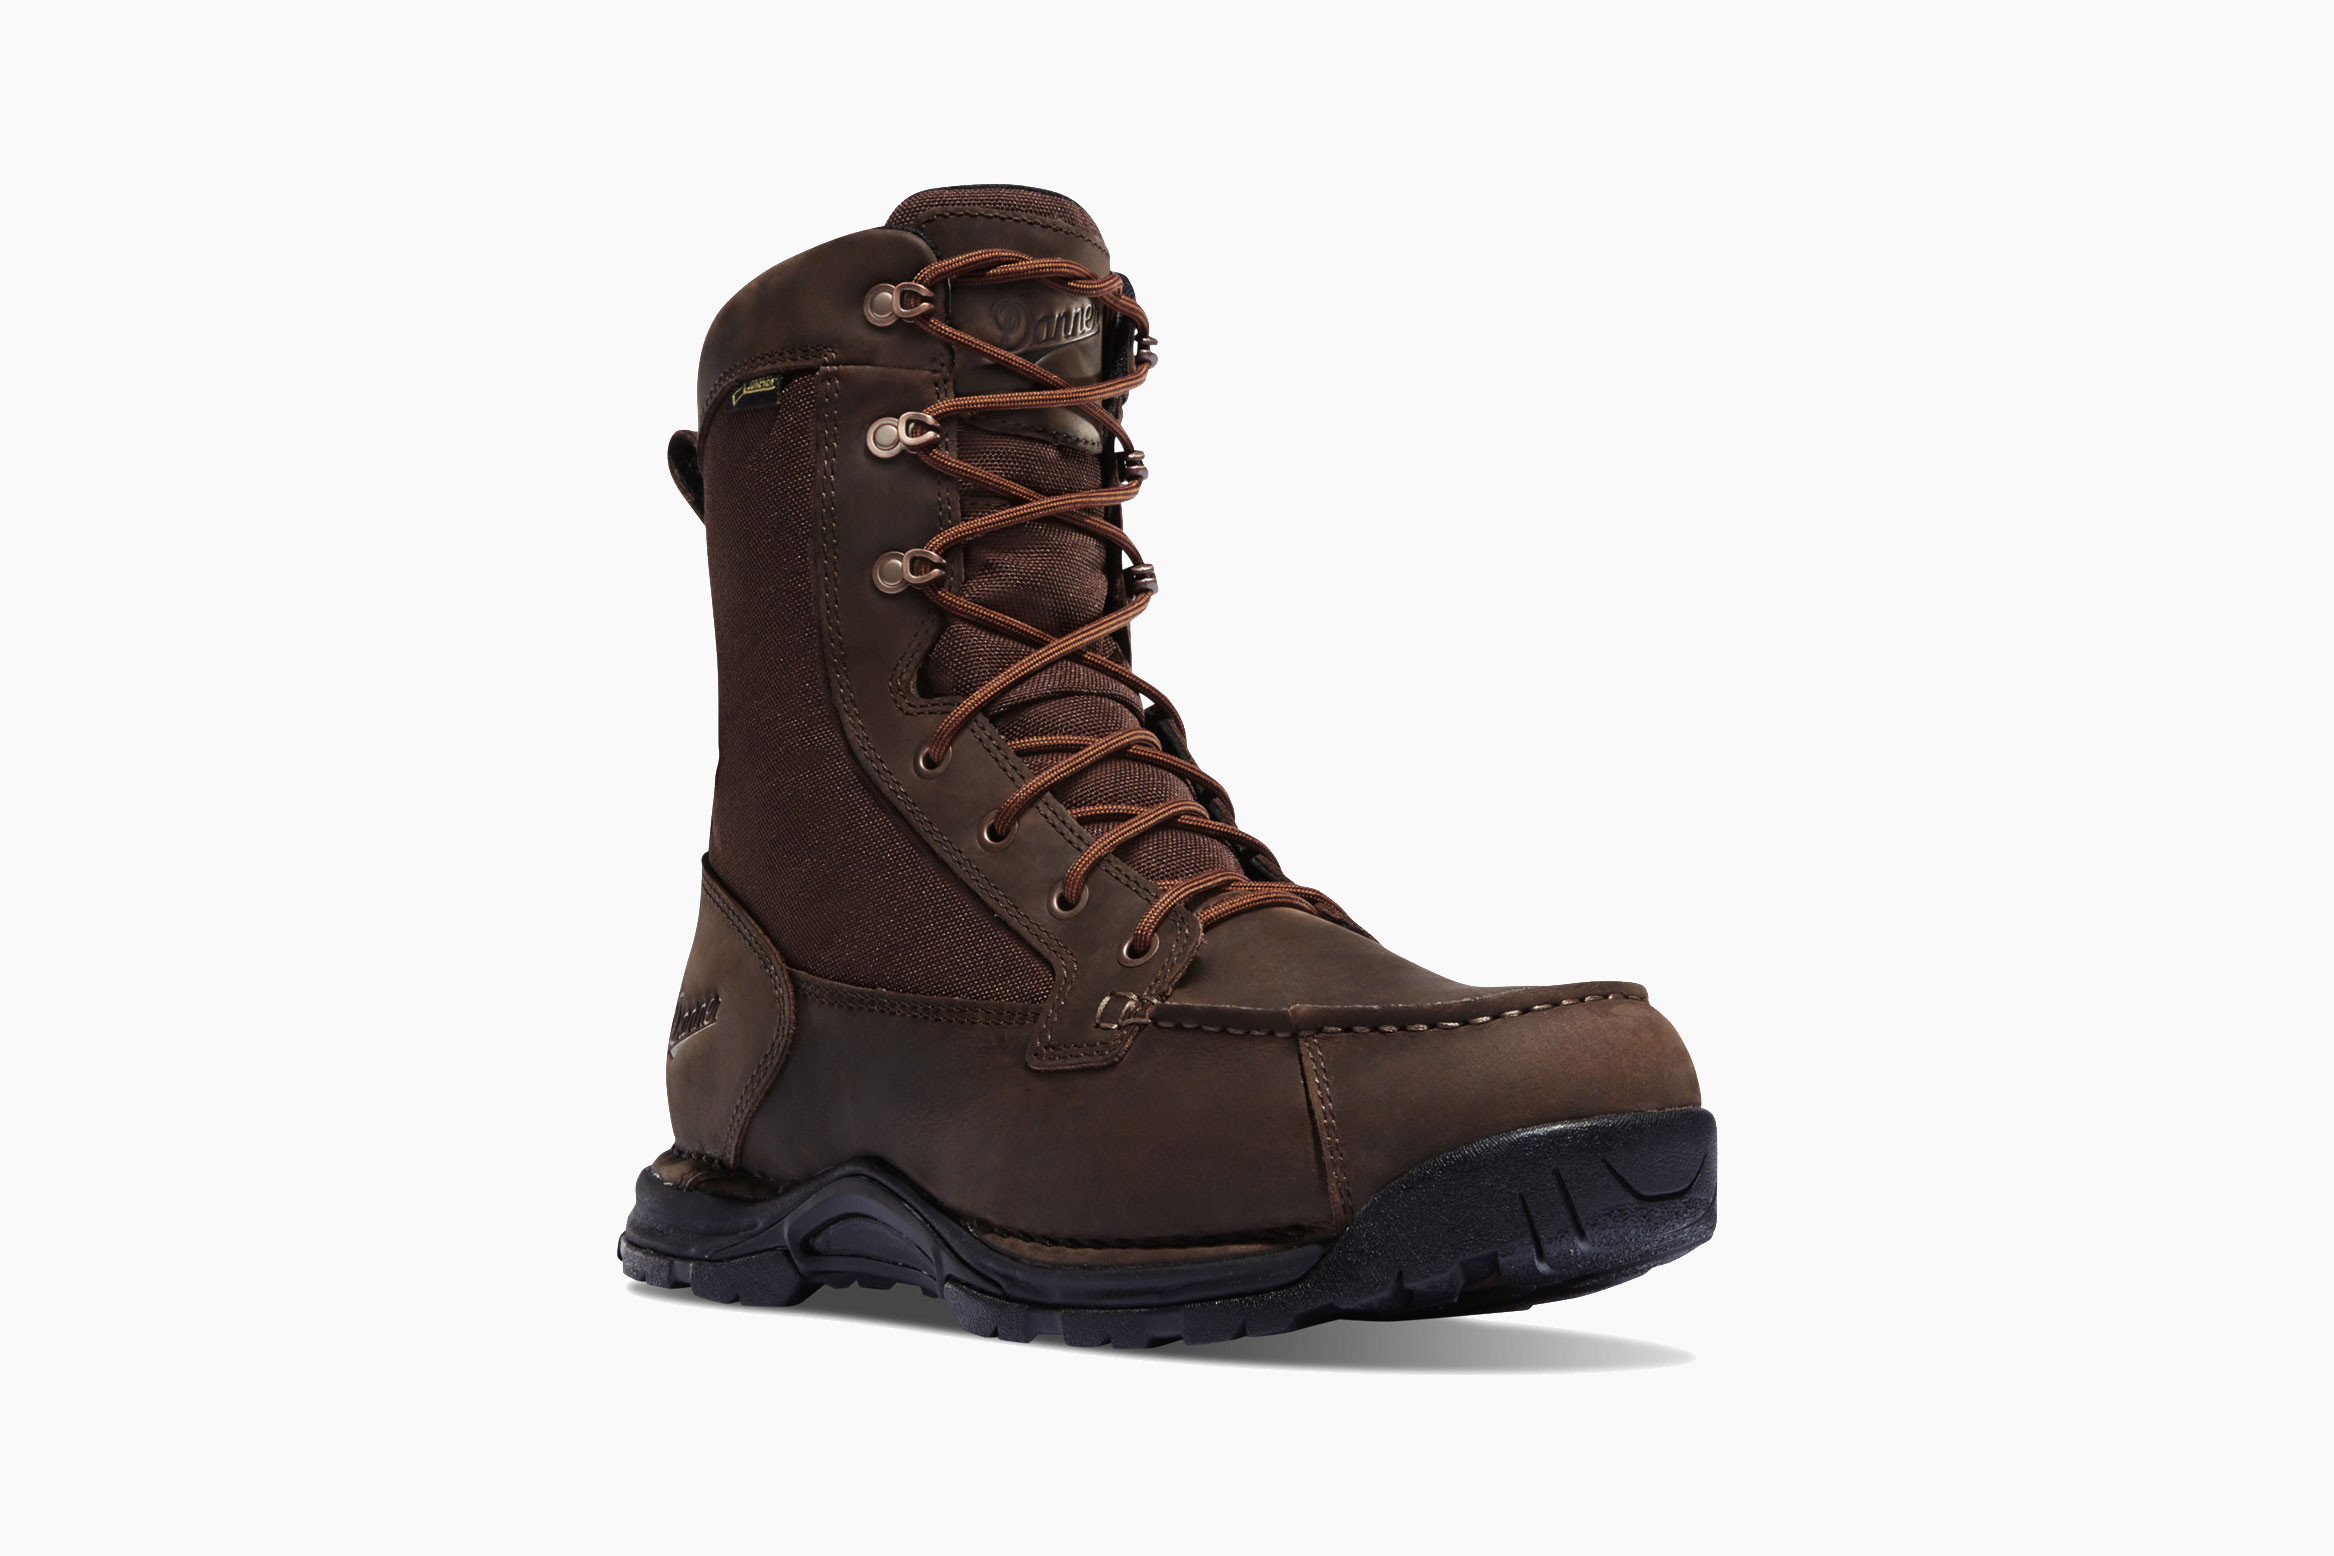 Danner Sharptail - The essential. The necessary. Tried and true. Every man should wear out at least one pair of Sharptails in his lifetime, or at least try their absolute best. Inspired by the storied upland tradition, the Danner Sharptail series brings age-old quality and performance to the hunt.